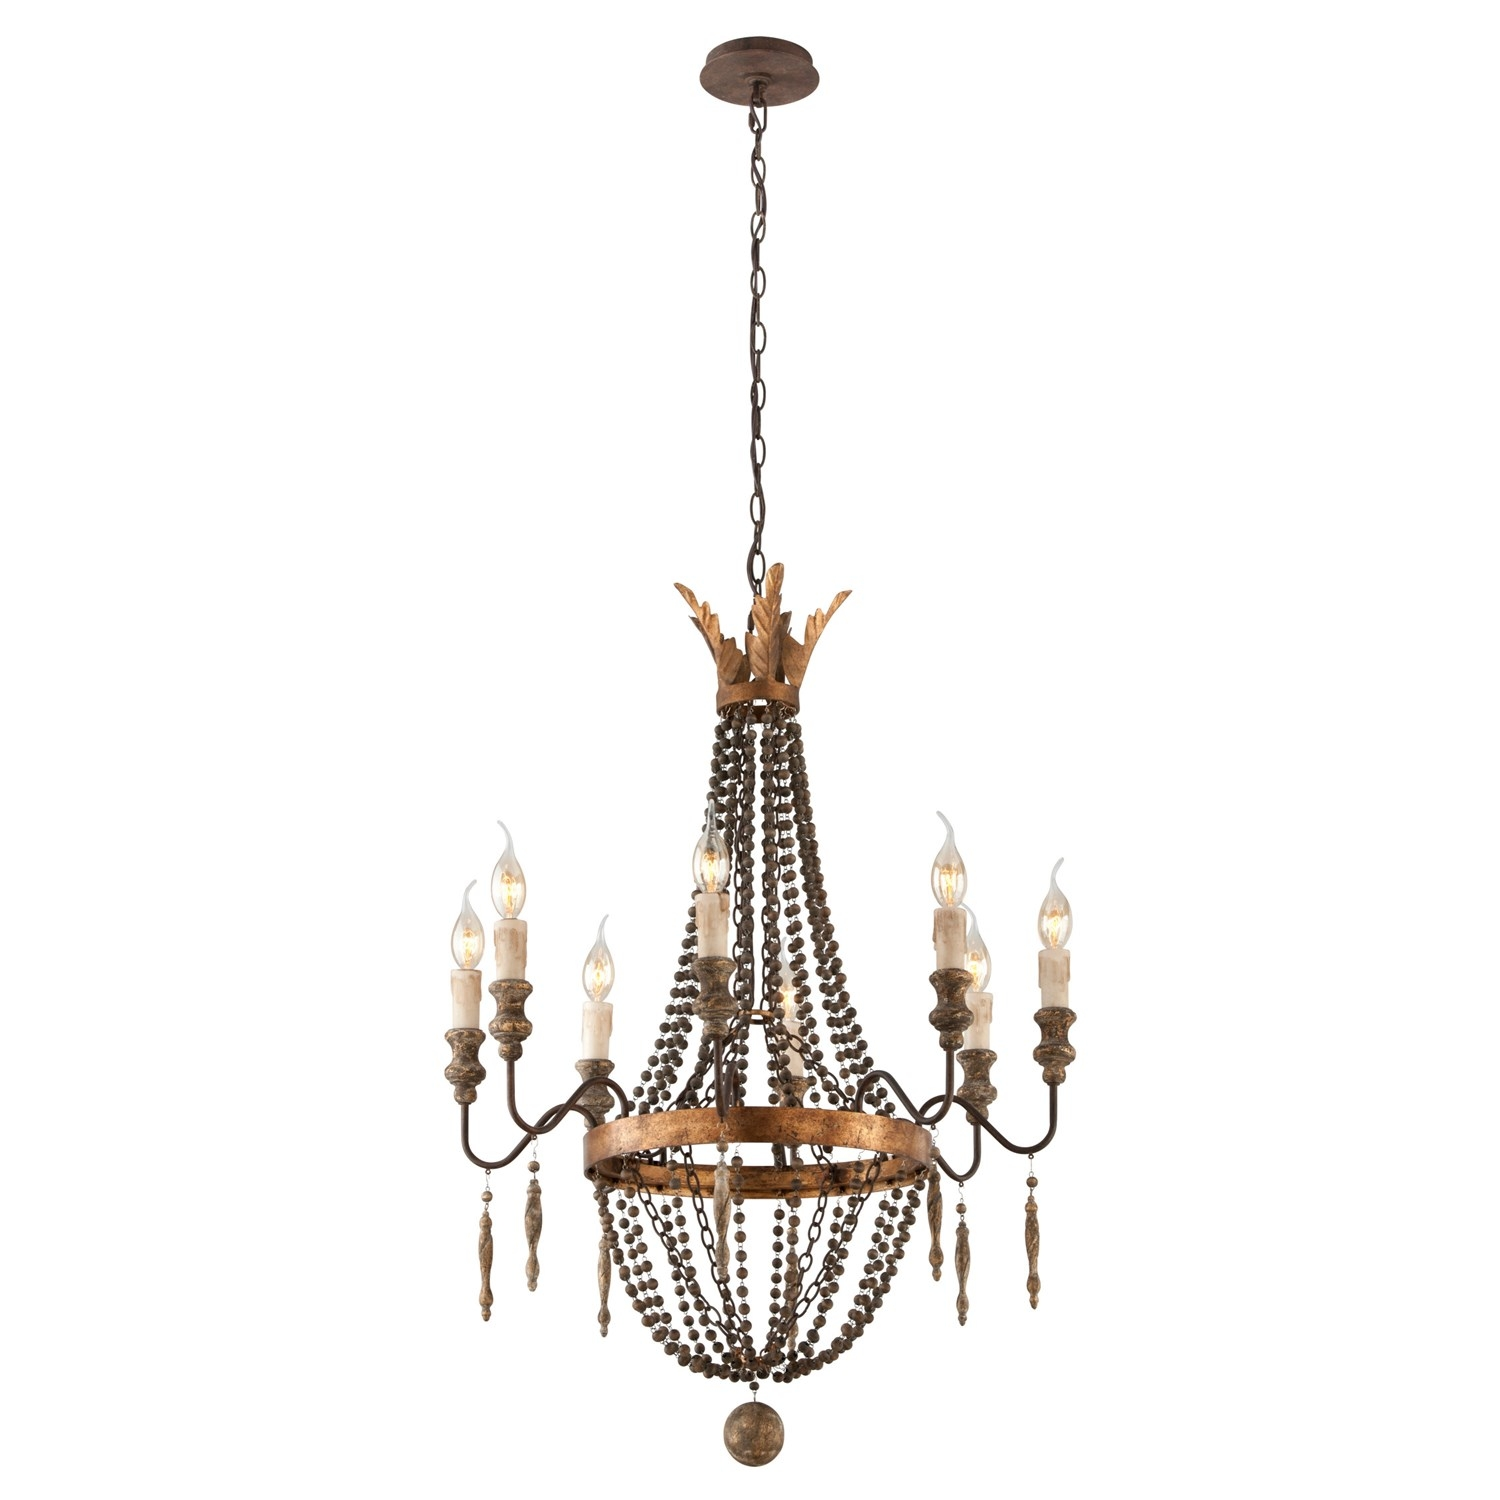 Troy Lighting F3535 Delacroix 8 Light Small Chandelier In French Intended For Small Bronze Chandelier (Image 15 of 15)